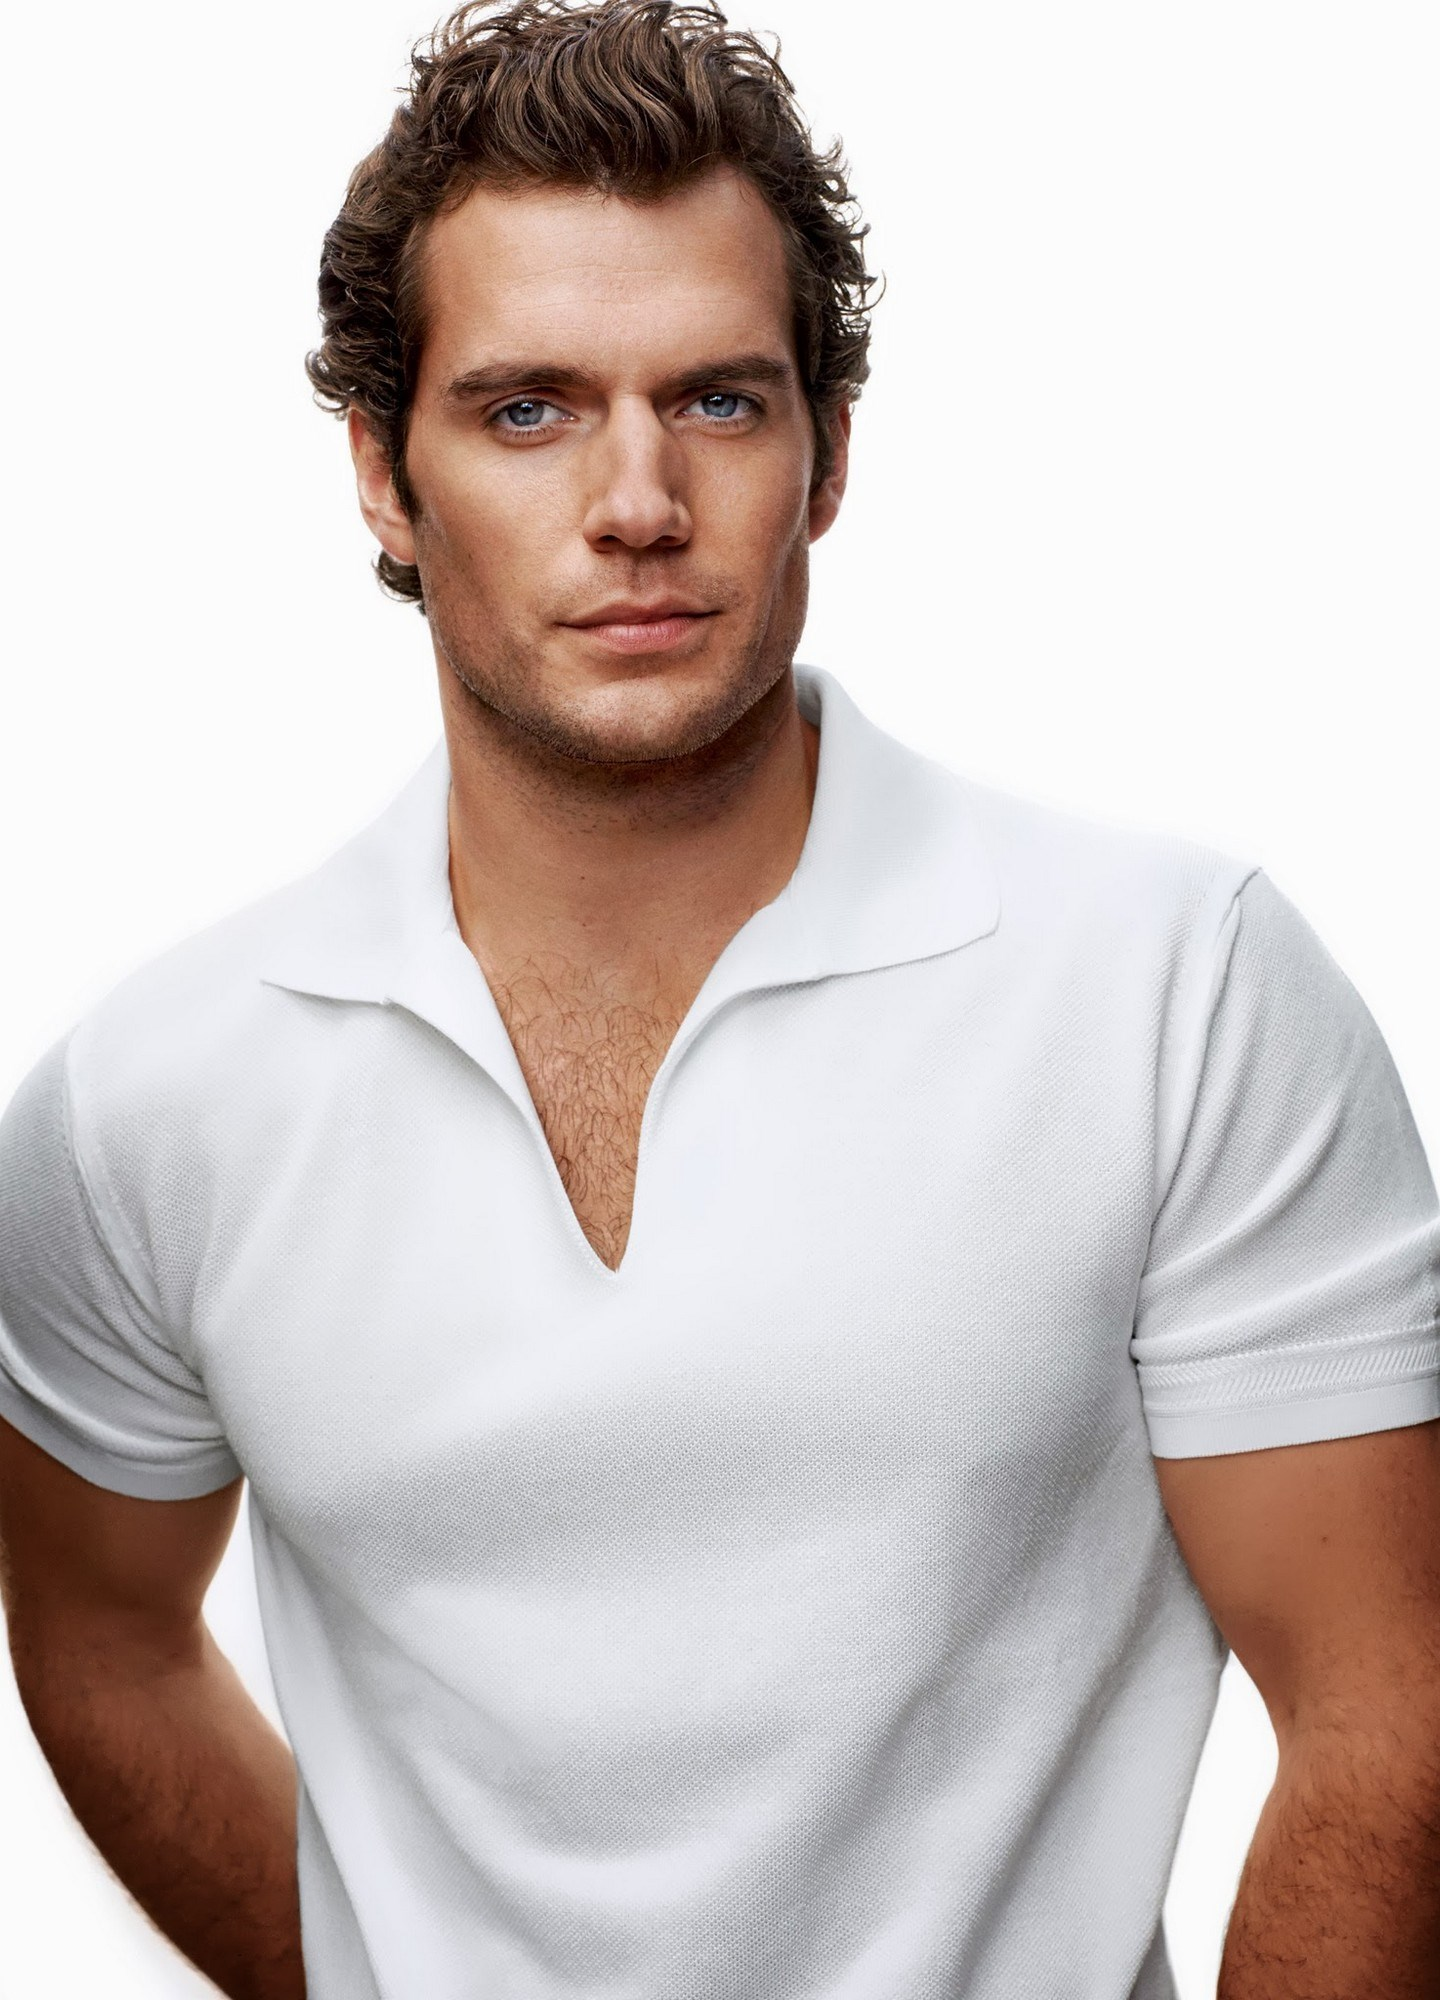 Henry Cavill | Known people - famous people news and ...